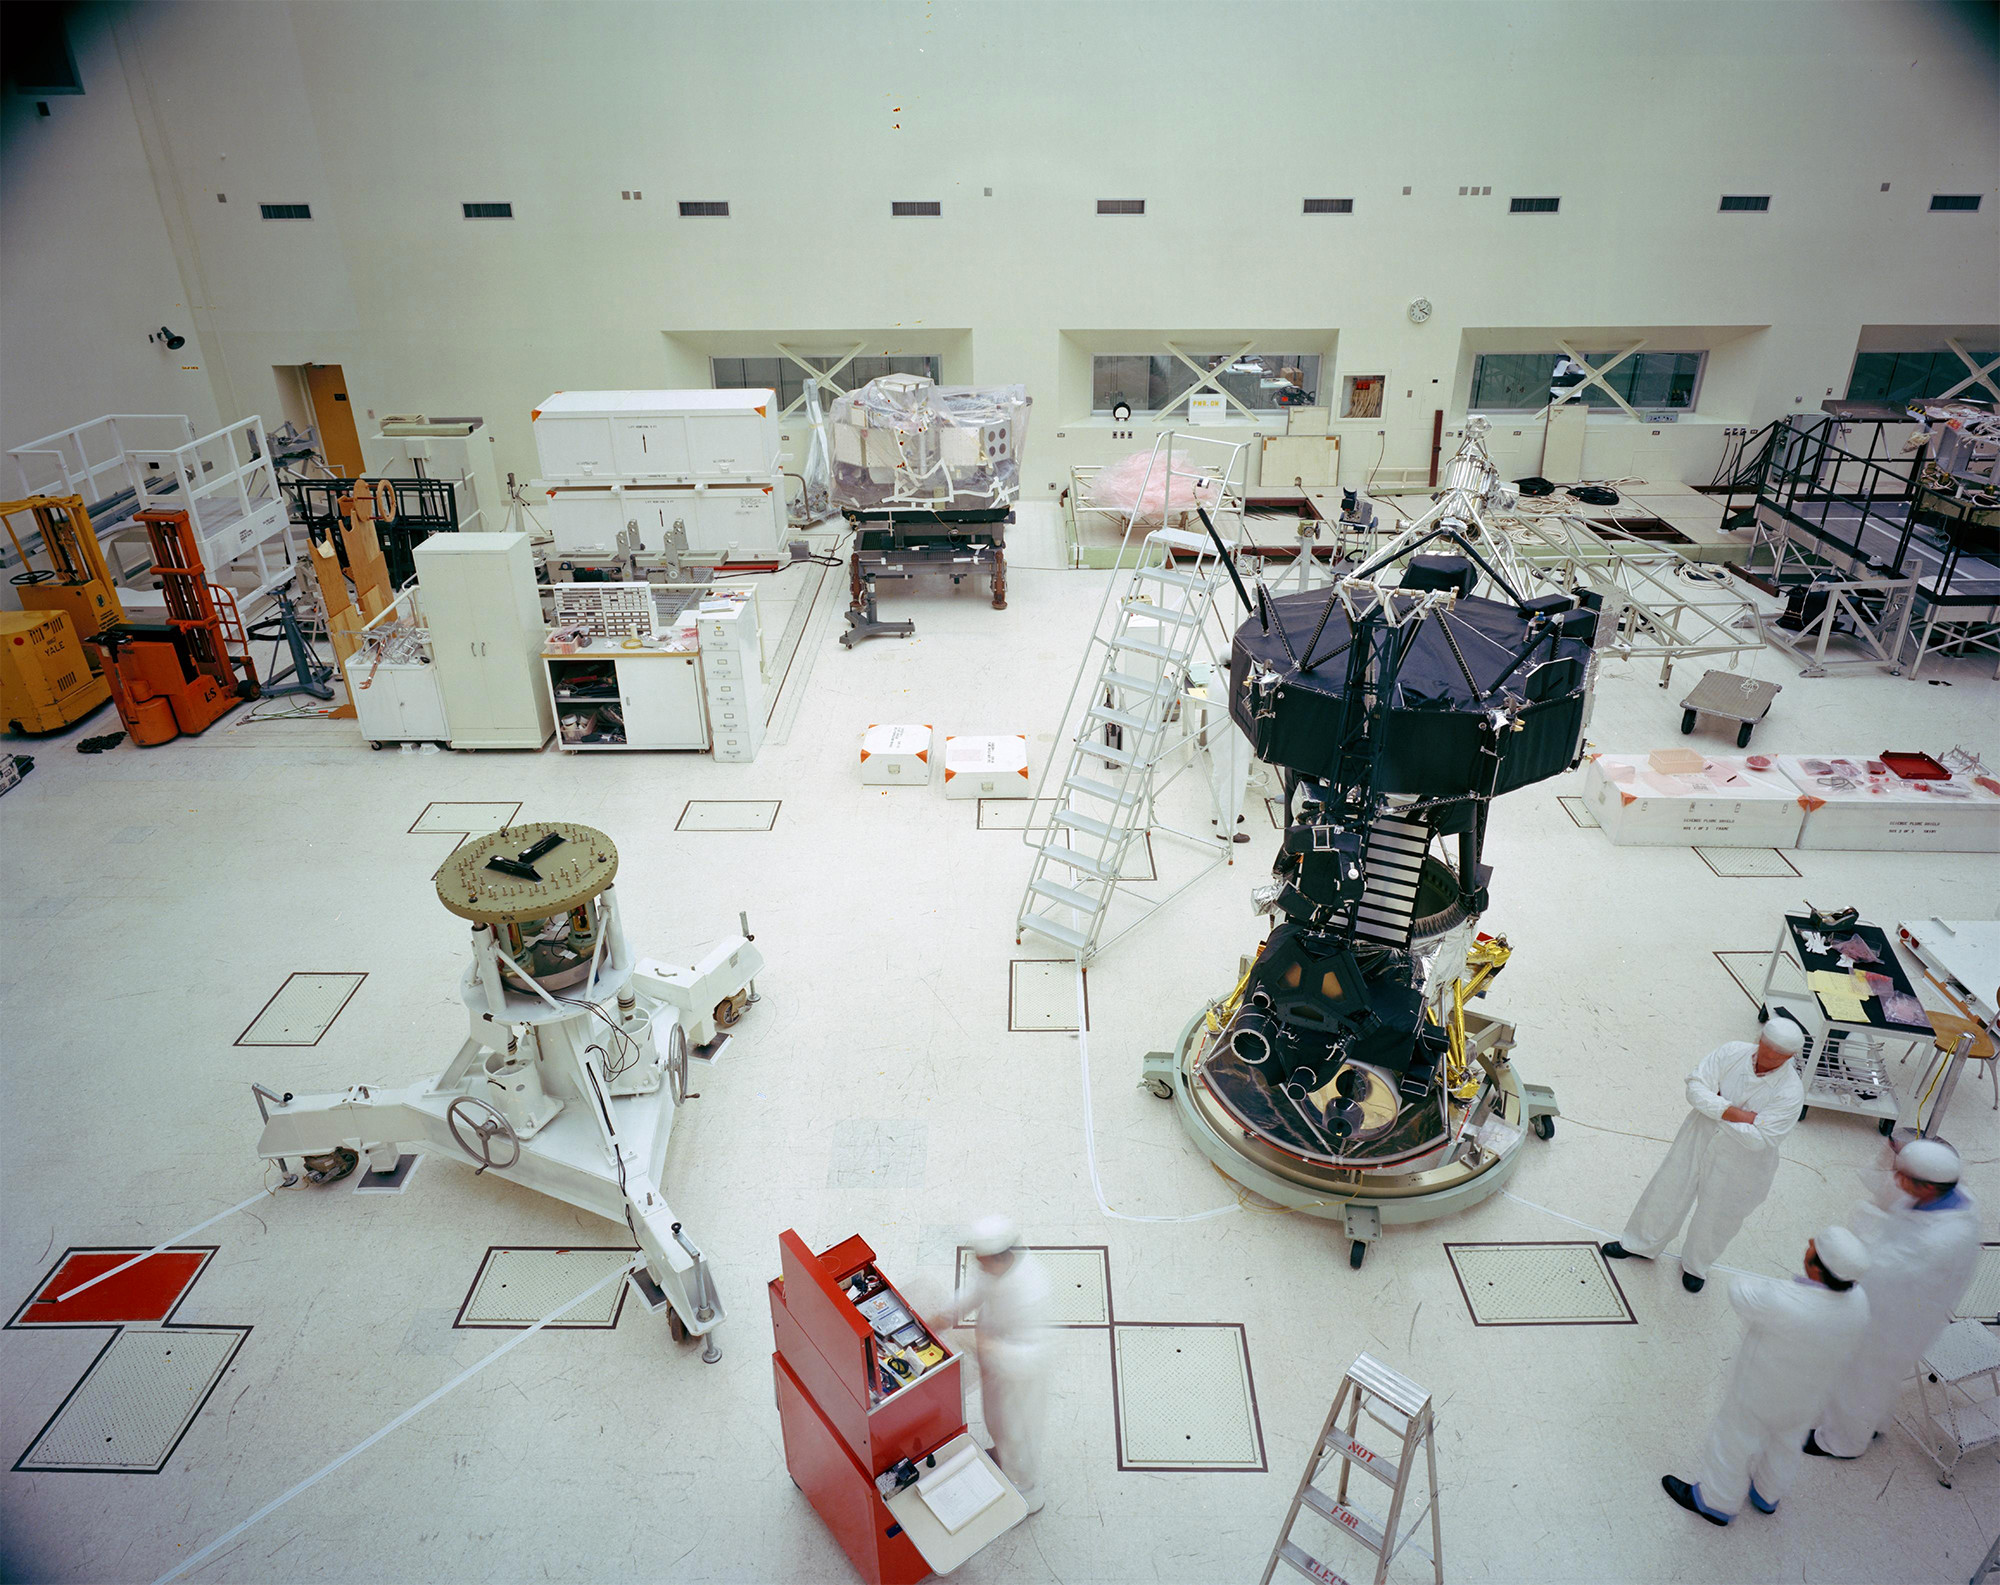 Voyager Proof Test Model and Cleanroom